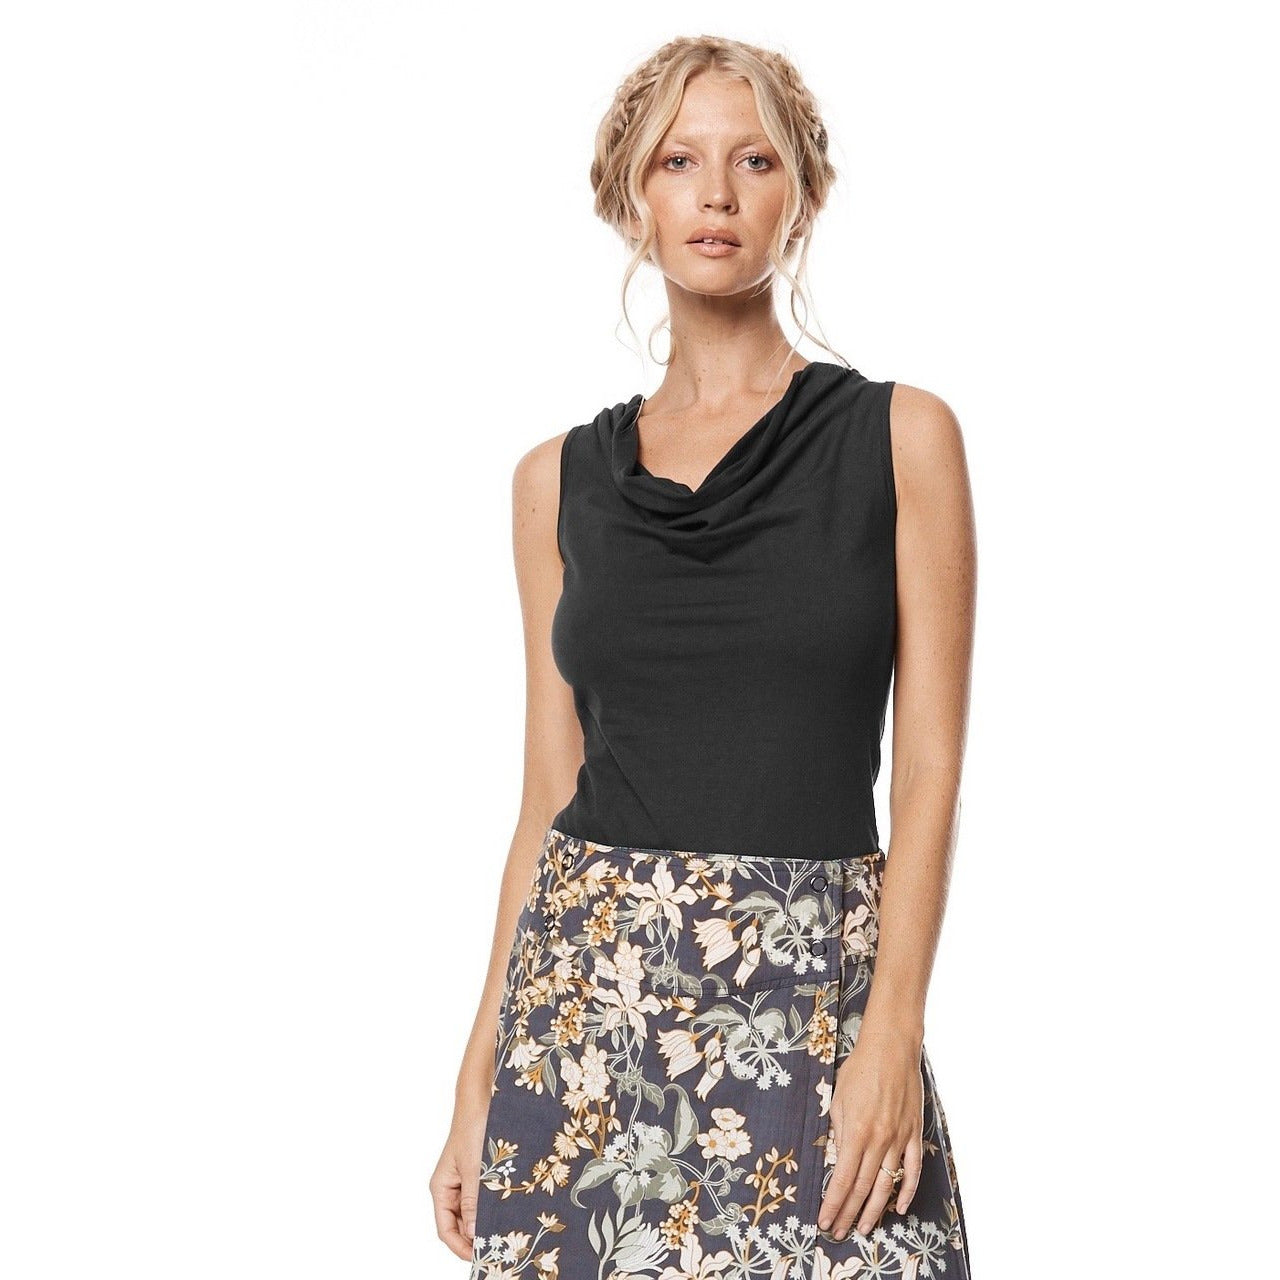 MahaShe Rosa Top in Black